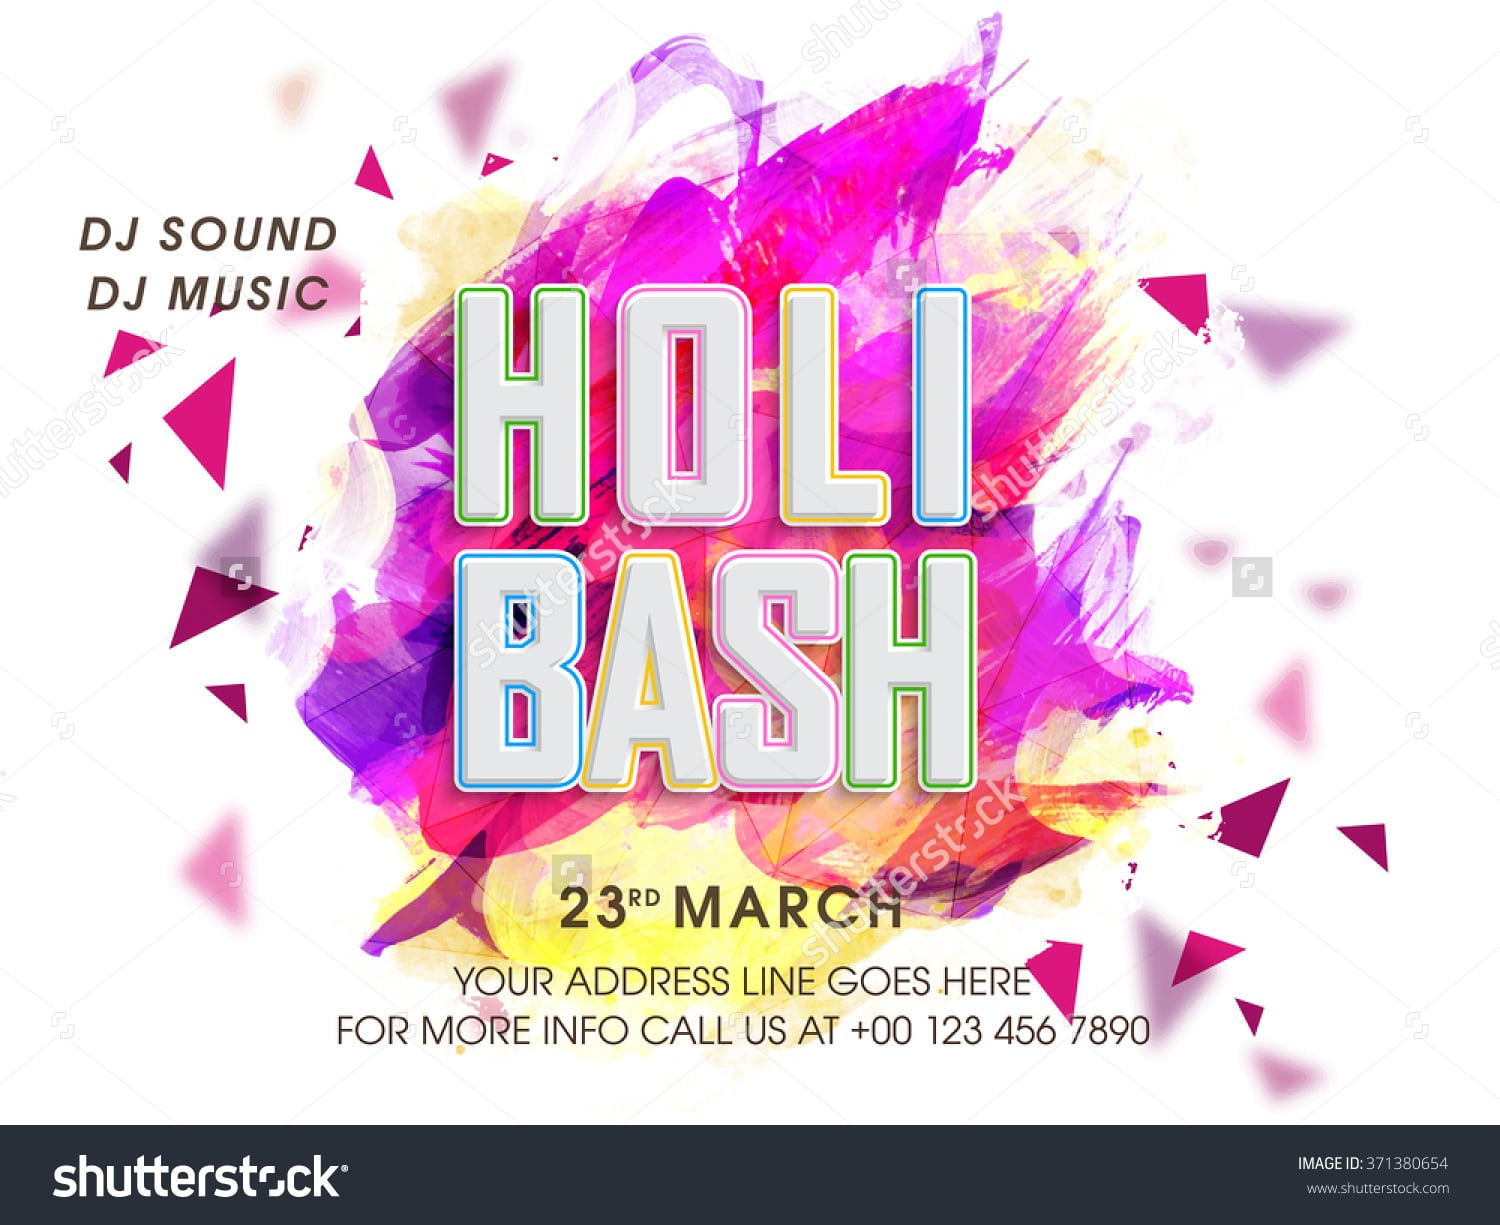 Stylish Party Invitation Card Design Indian Stock Vector 371380654